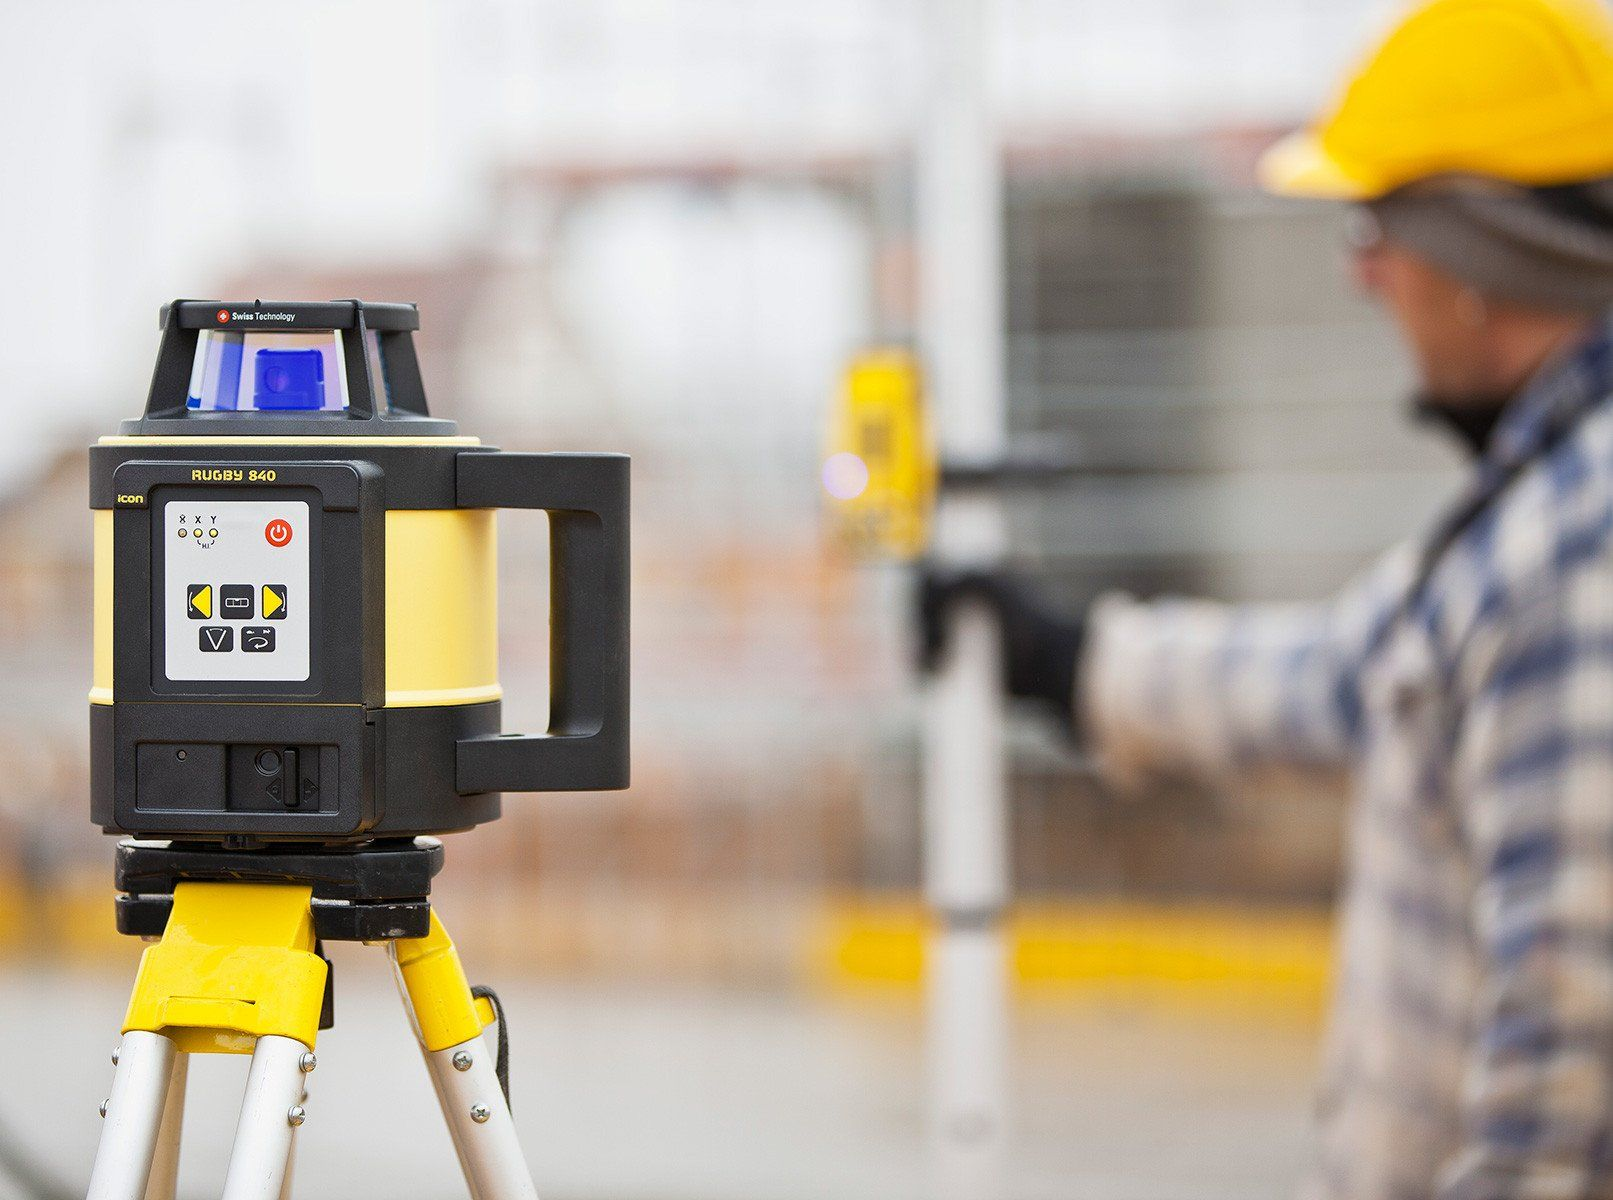 WHAT ARE LASER LEVEL USED FOR? A laser level can be used